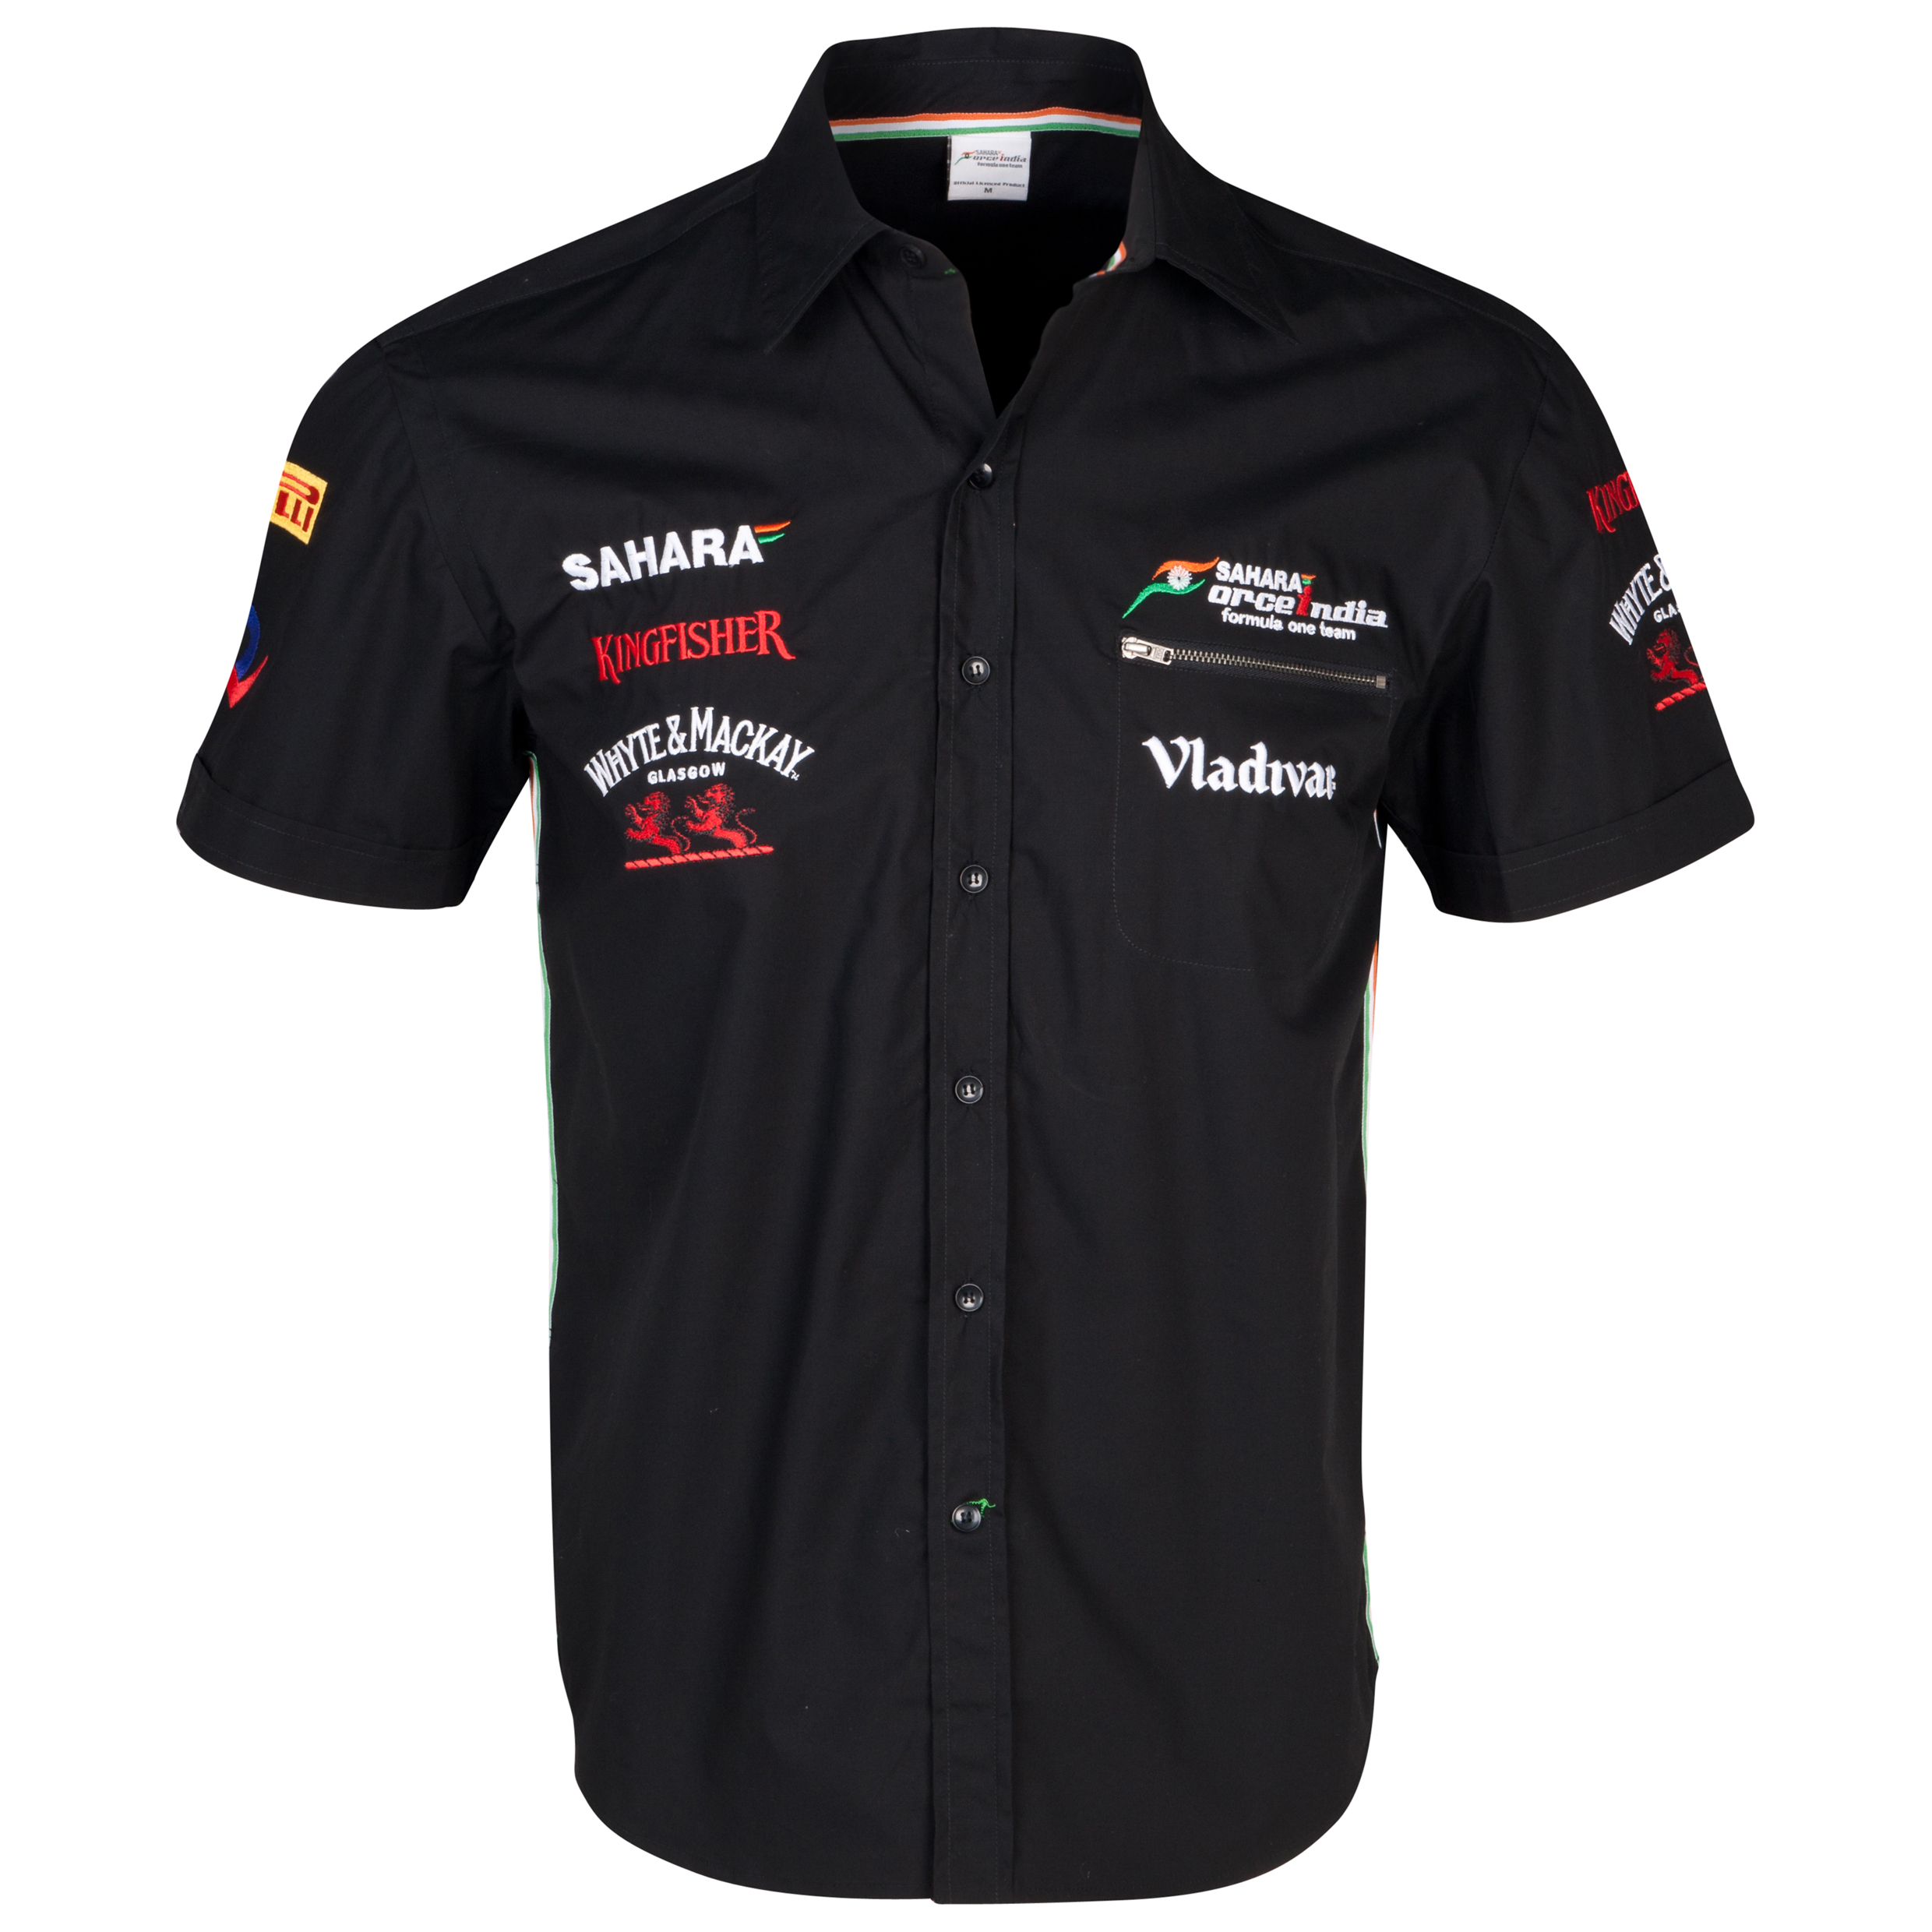 Sahara Force India Fan Shirt